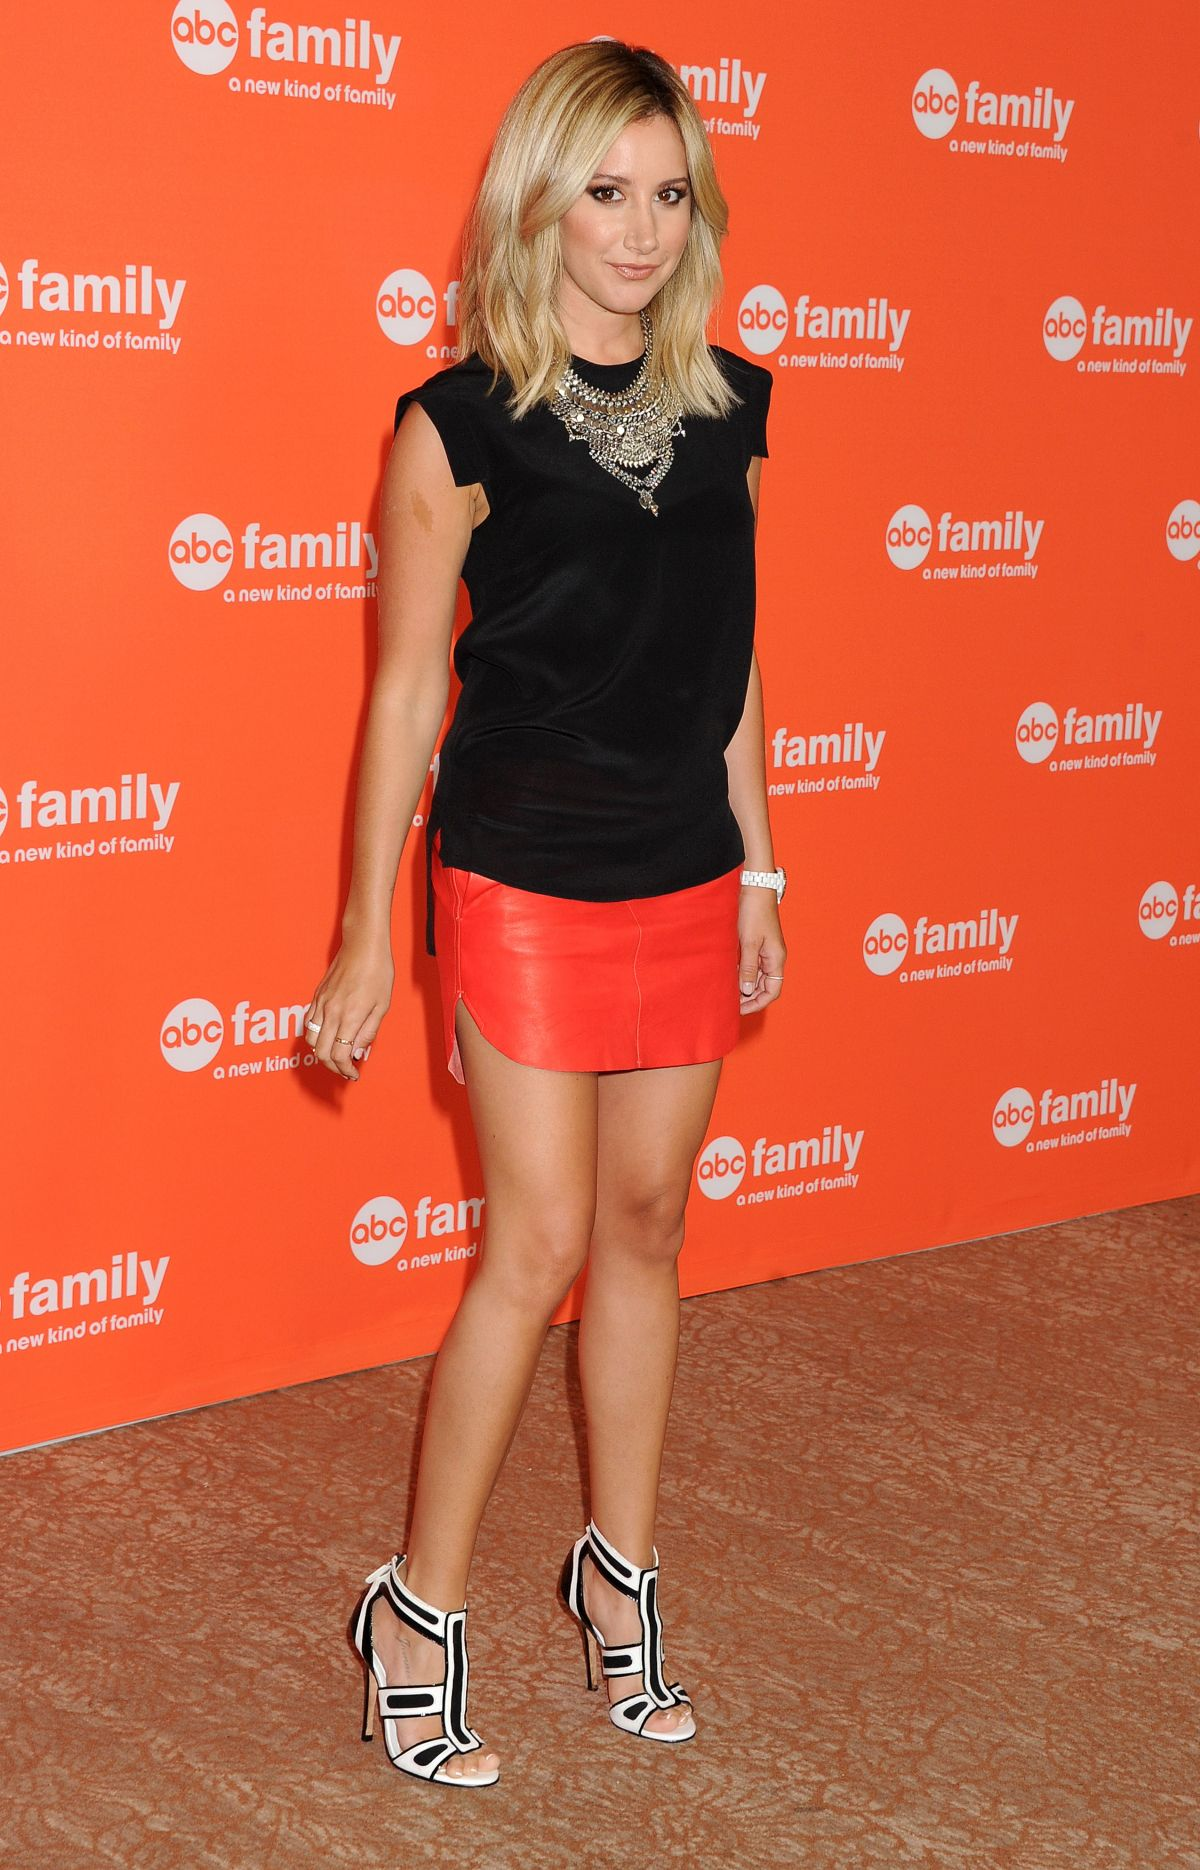 ashley tisdale dating wdw Before he married actress ashley tisdale, composer christopher french was once linked to cuoco it's unclear exactly how long they dated, but the two are reported to have been together during 2011 and 2012.